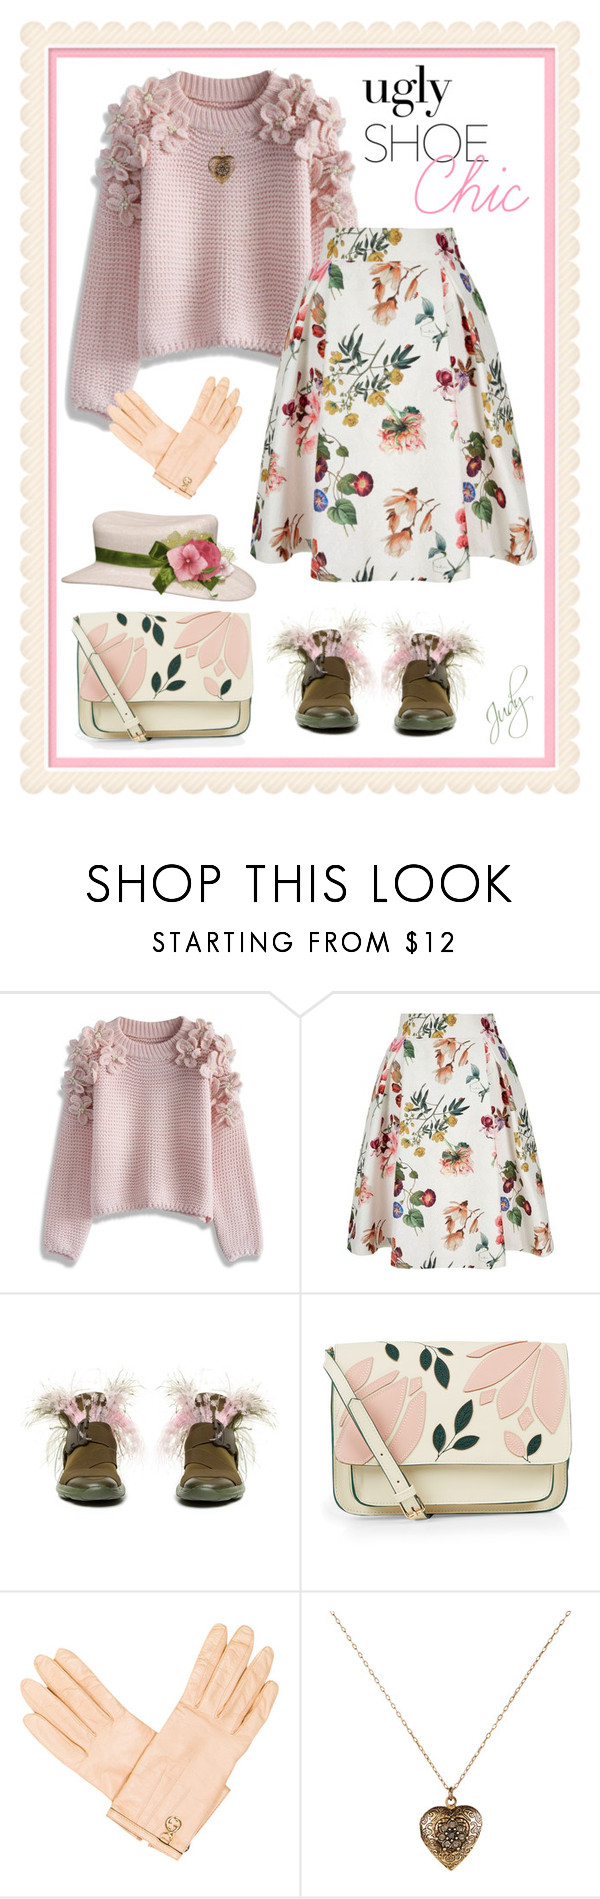 """""""Ugly Cute Shoes"""" by judymjohnson ❤ liked on Polyvore featuring Chicwish, Yumi, Christopher Kane, Accessorize and Gucci"""